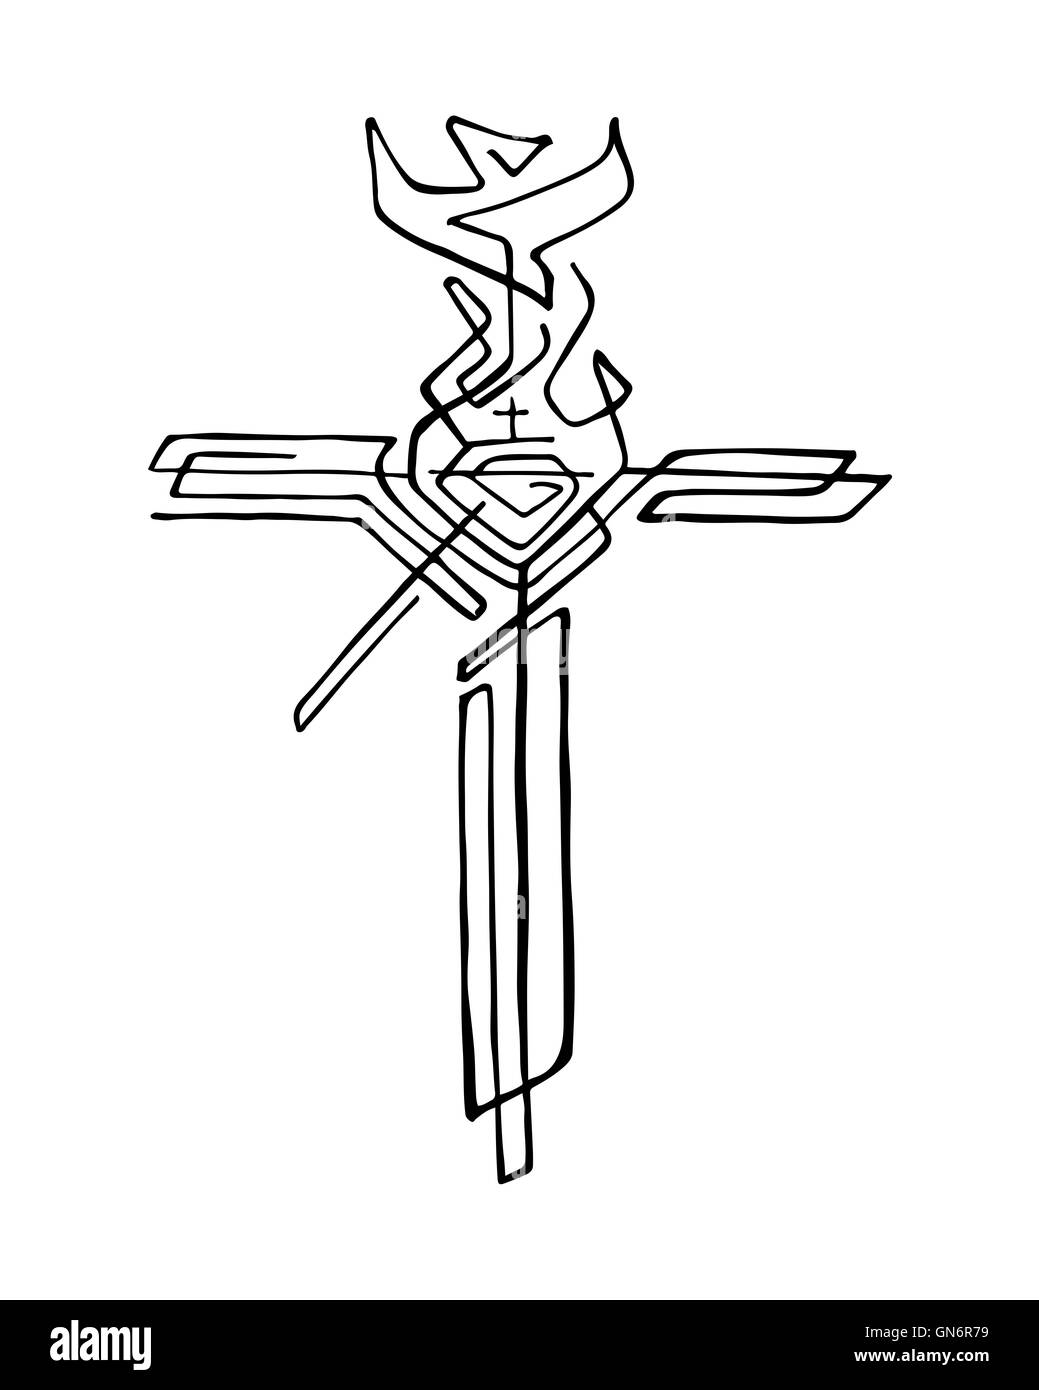 Hand Drawn Illustration Or Drawing Of A Religious Cross With Stock